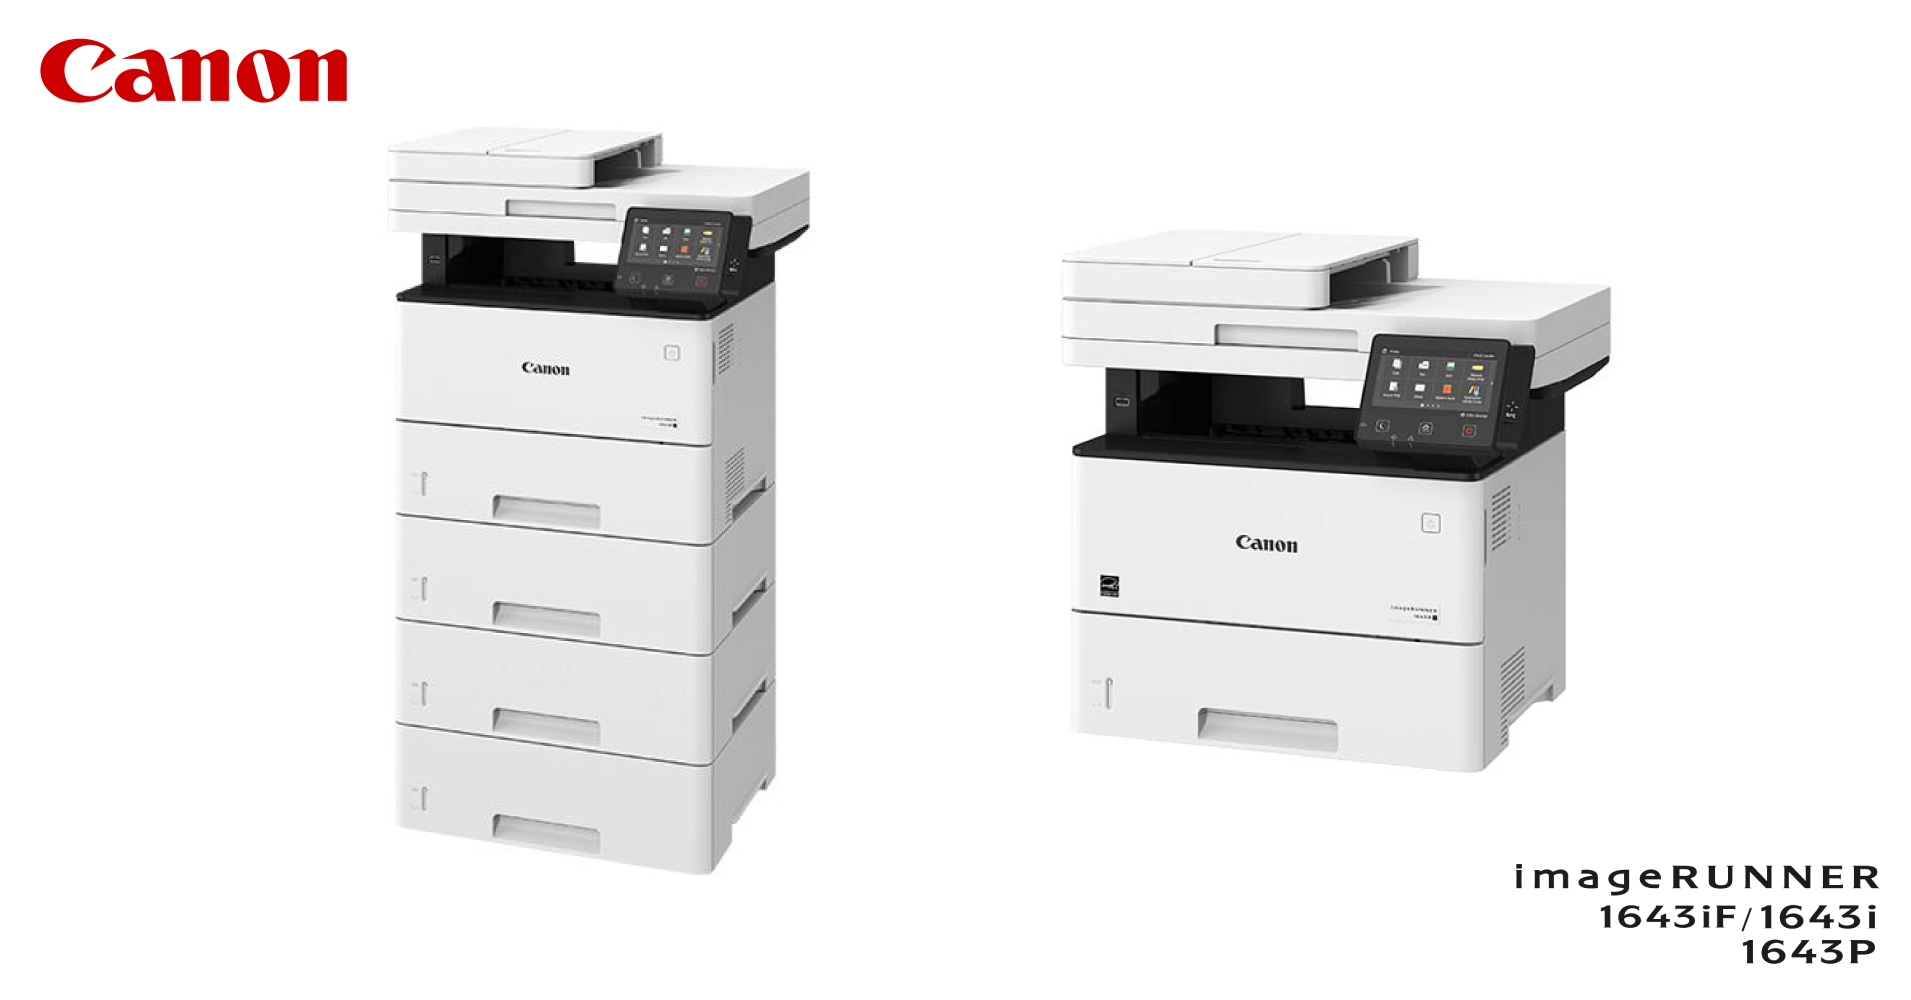 Secure and Versatile - An Overview of the new Canon imageRUNNER 1643 Series